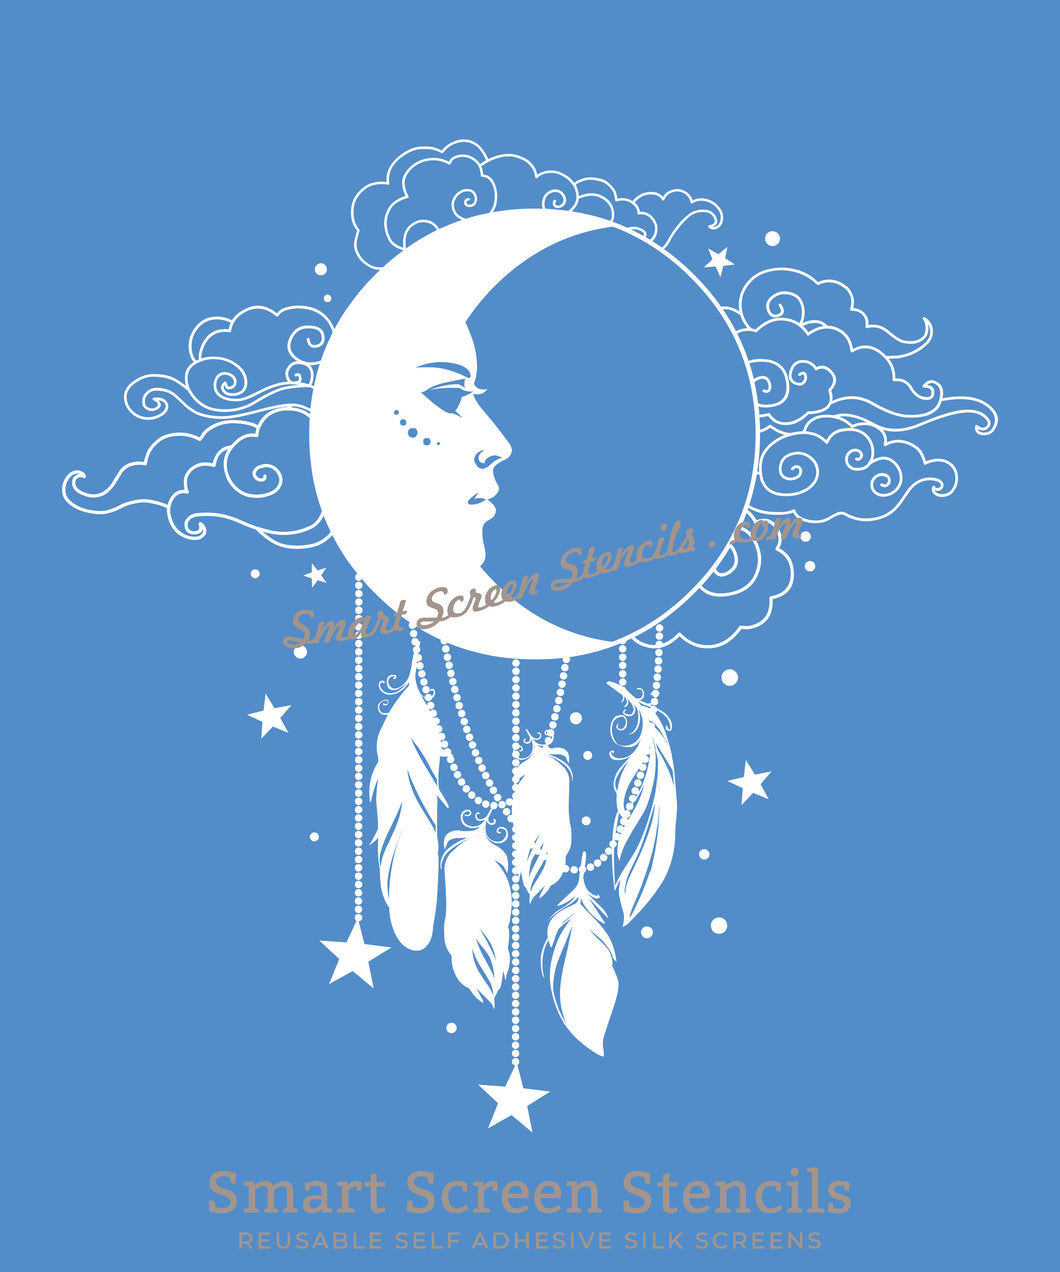 Moon Dreamcatcher SilkScreen Stencil - Reusable, Selfadhesive - Canvas, Cards, Glass, Ceramic, Walls, Fabric, Wood, Metal, Tote-bag, T-shirt